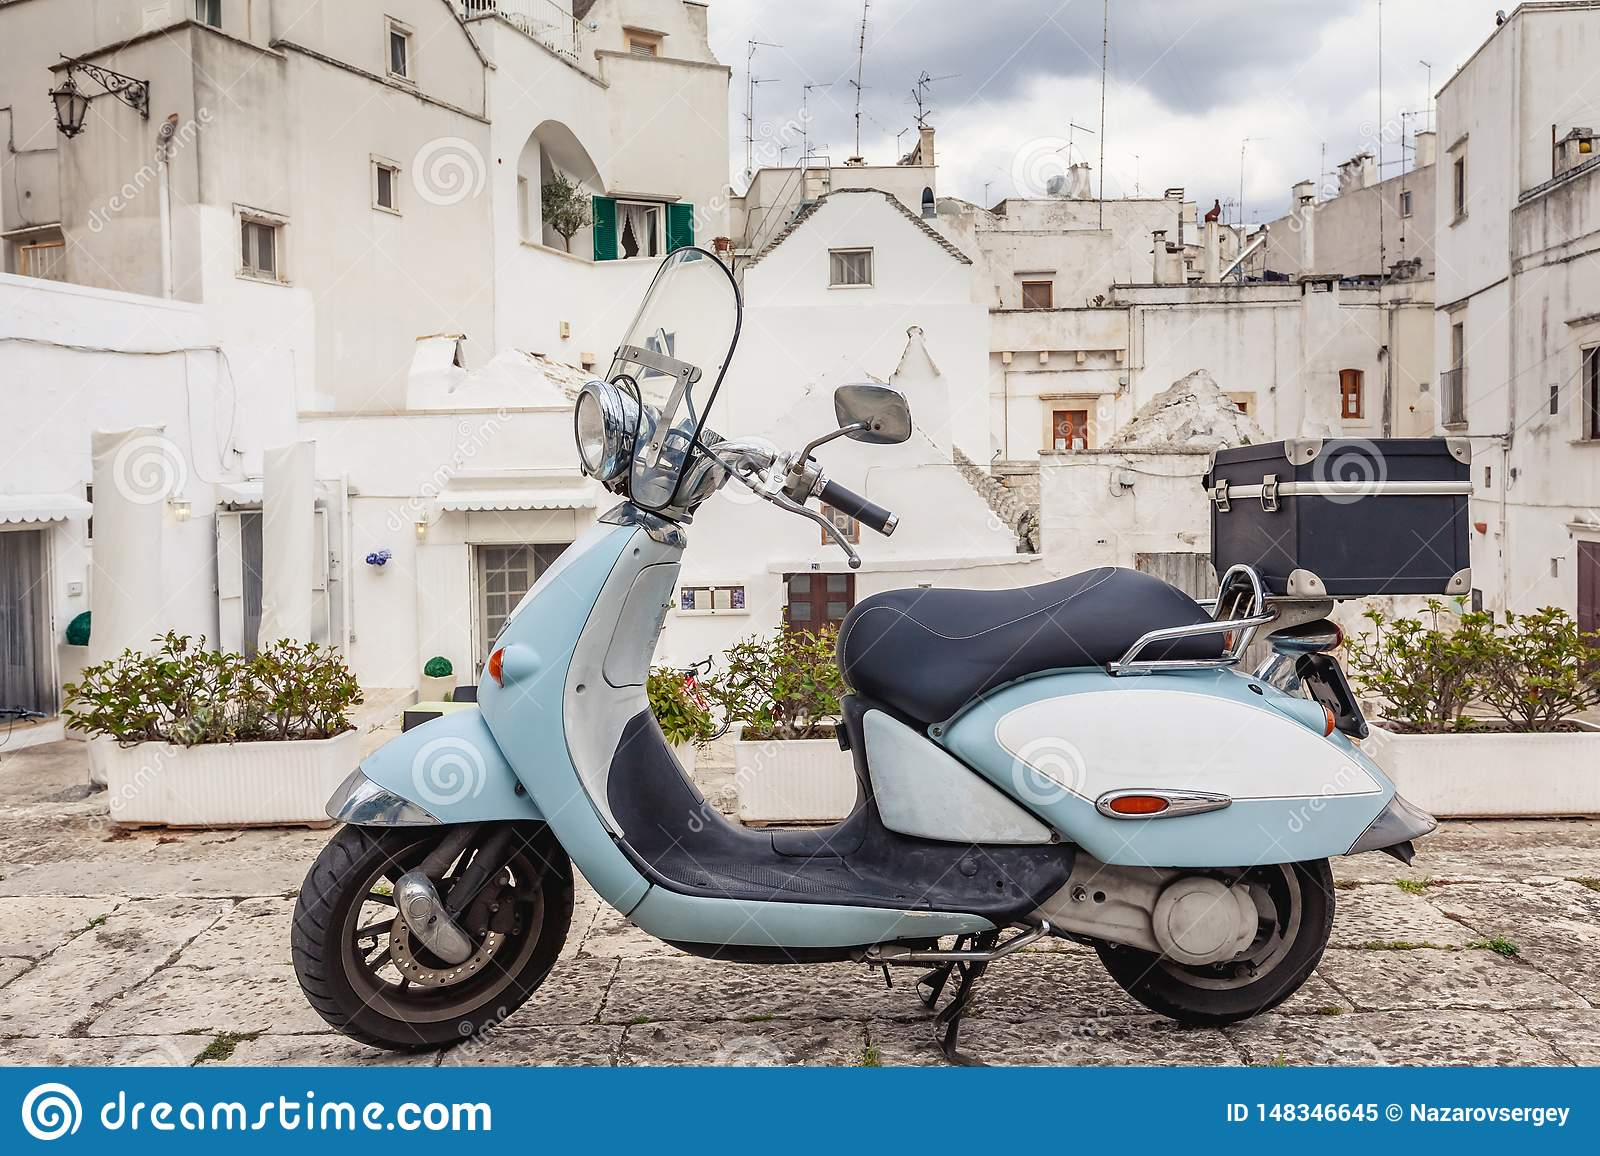 View of the old town of Martina Franca. Classic blue moped on the background of an anient buildings.